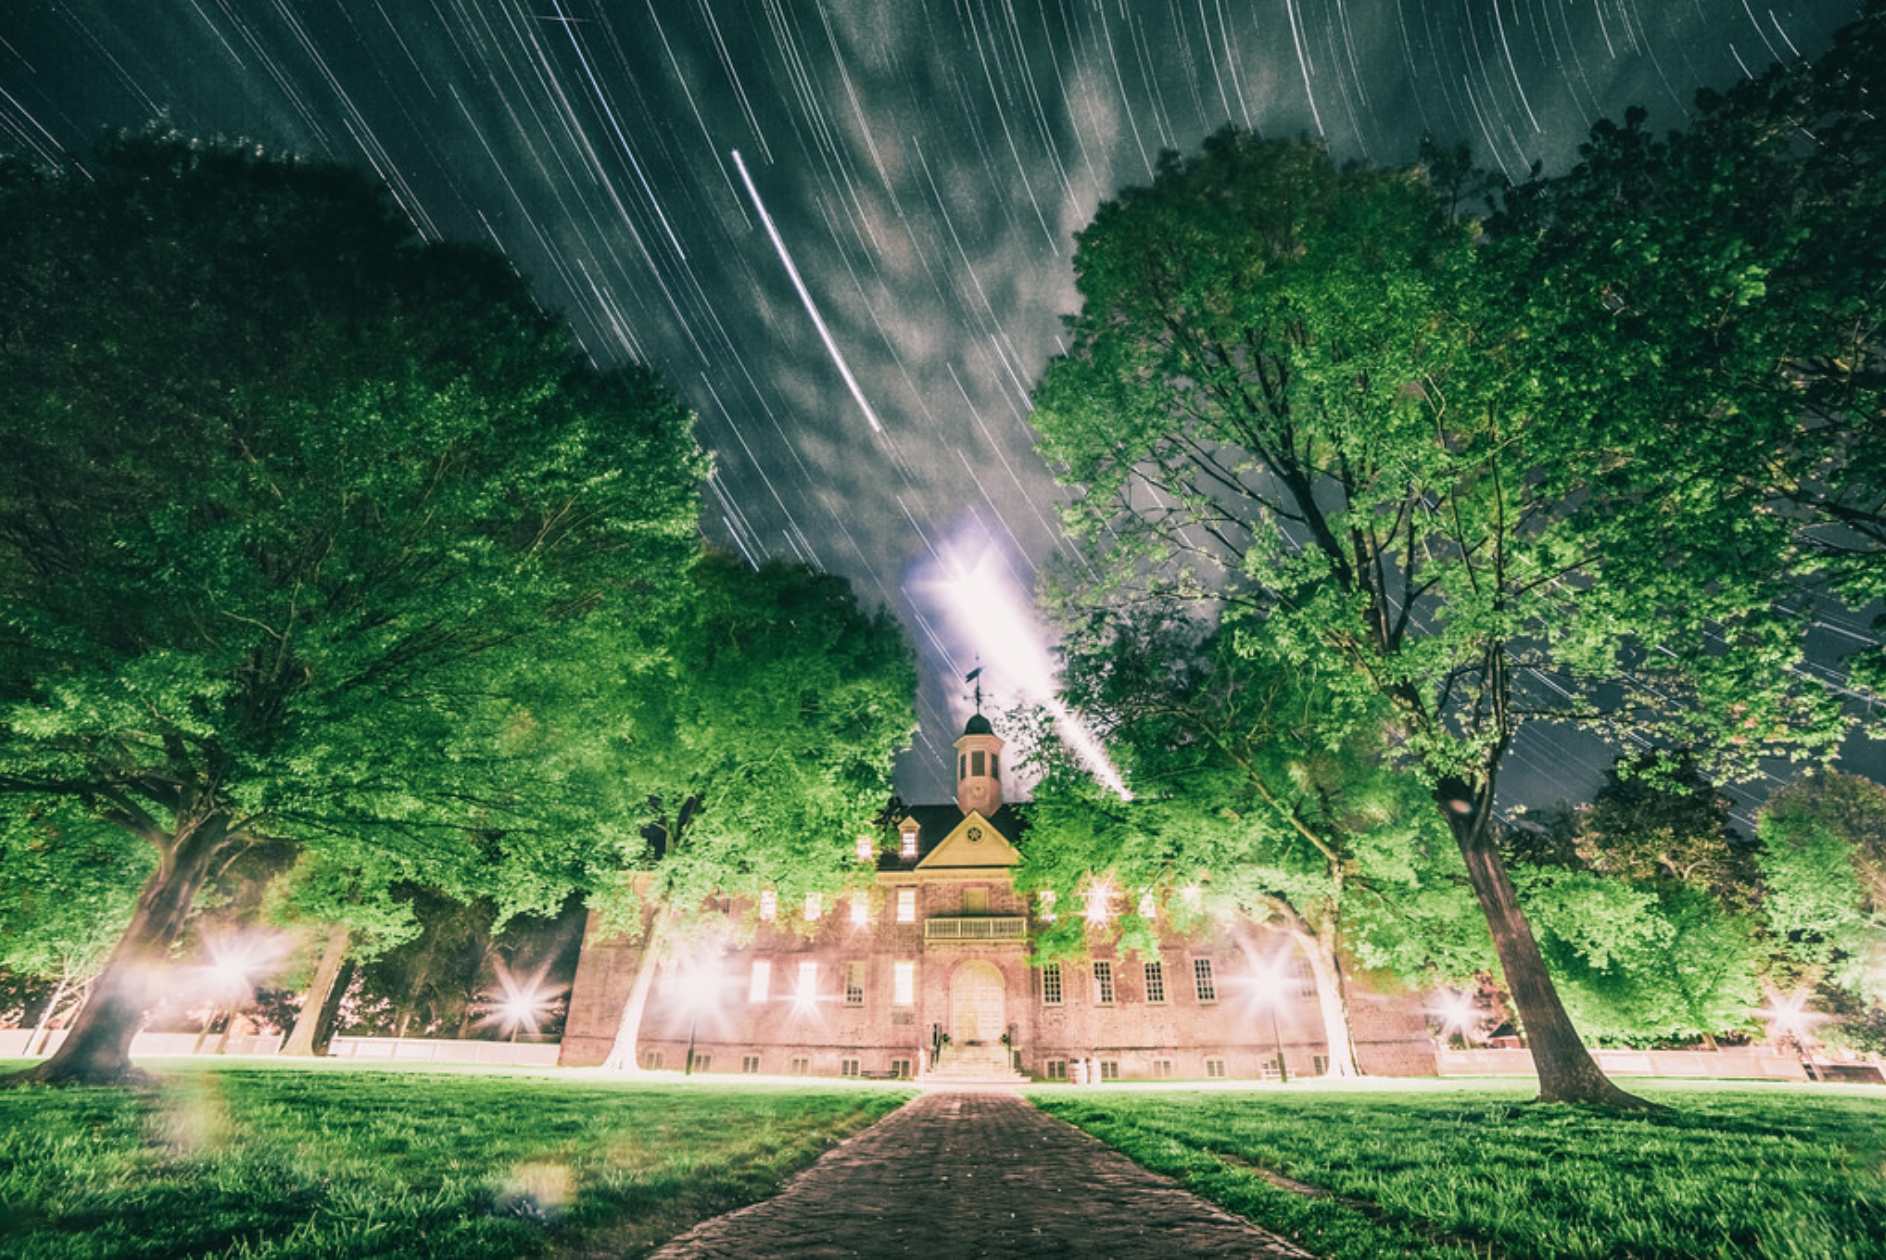 The historic Christopher Wren Building at the College of William & Mary, credit Danny Rosenberg